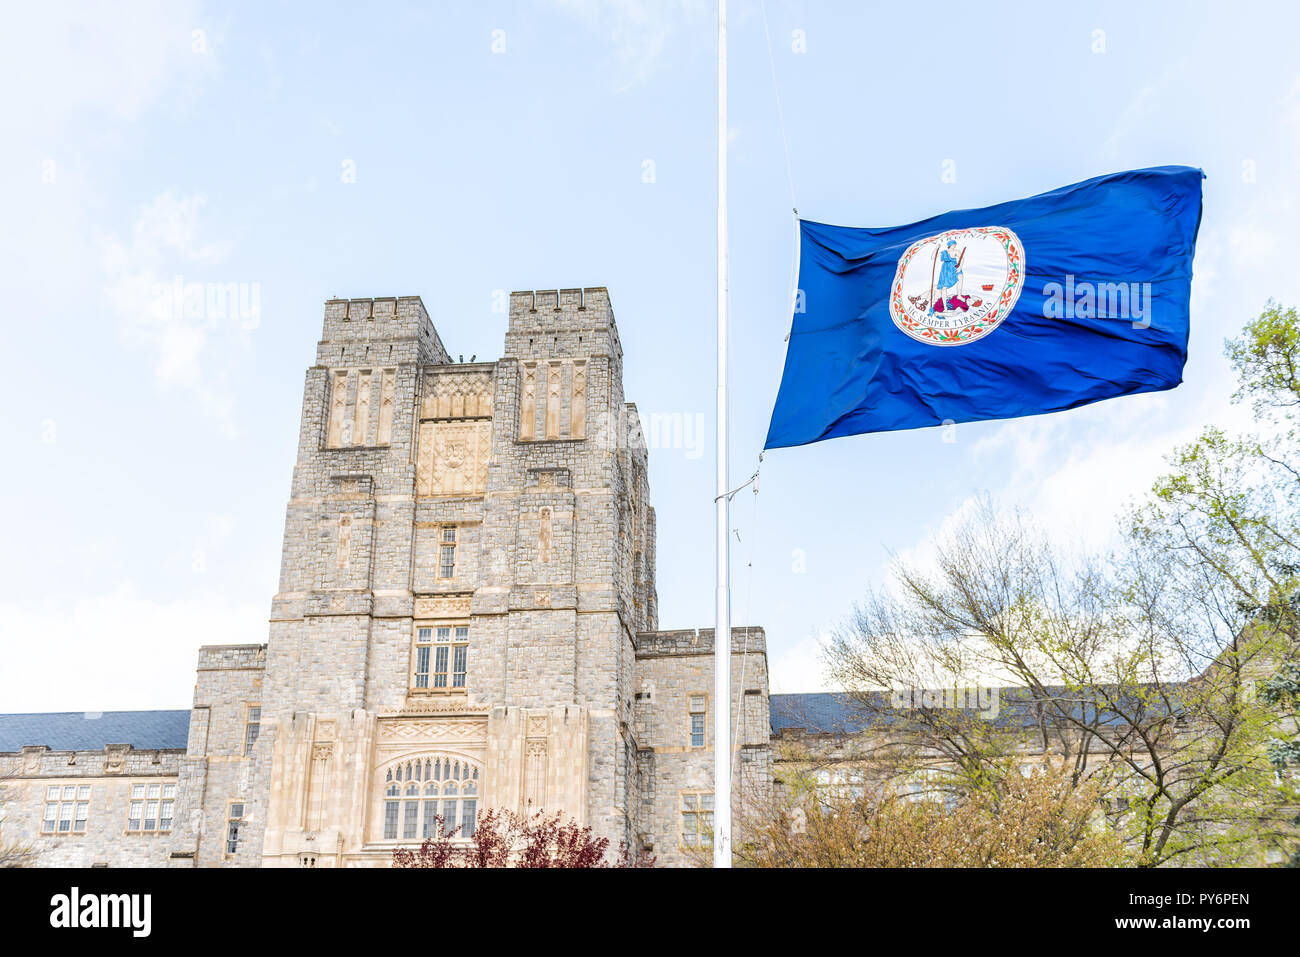 Blacksburg, USA - April 19, 2018: Historic Virginia Tech Polytechnic Institute and State University College campus with Burruss hall facade exterior i - Stock Image